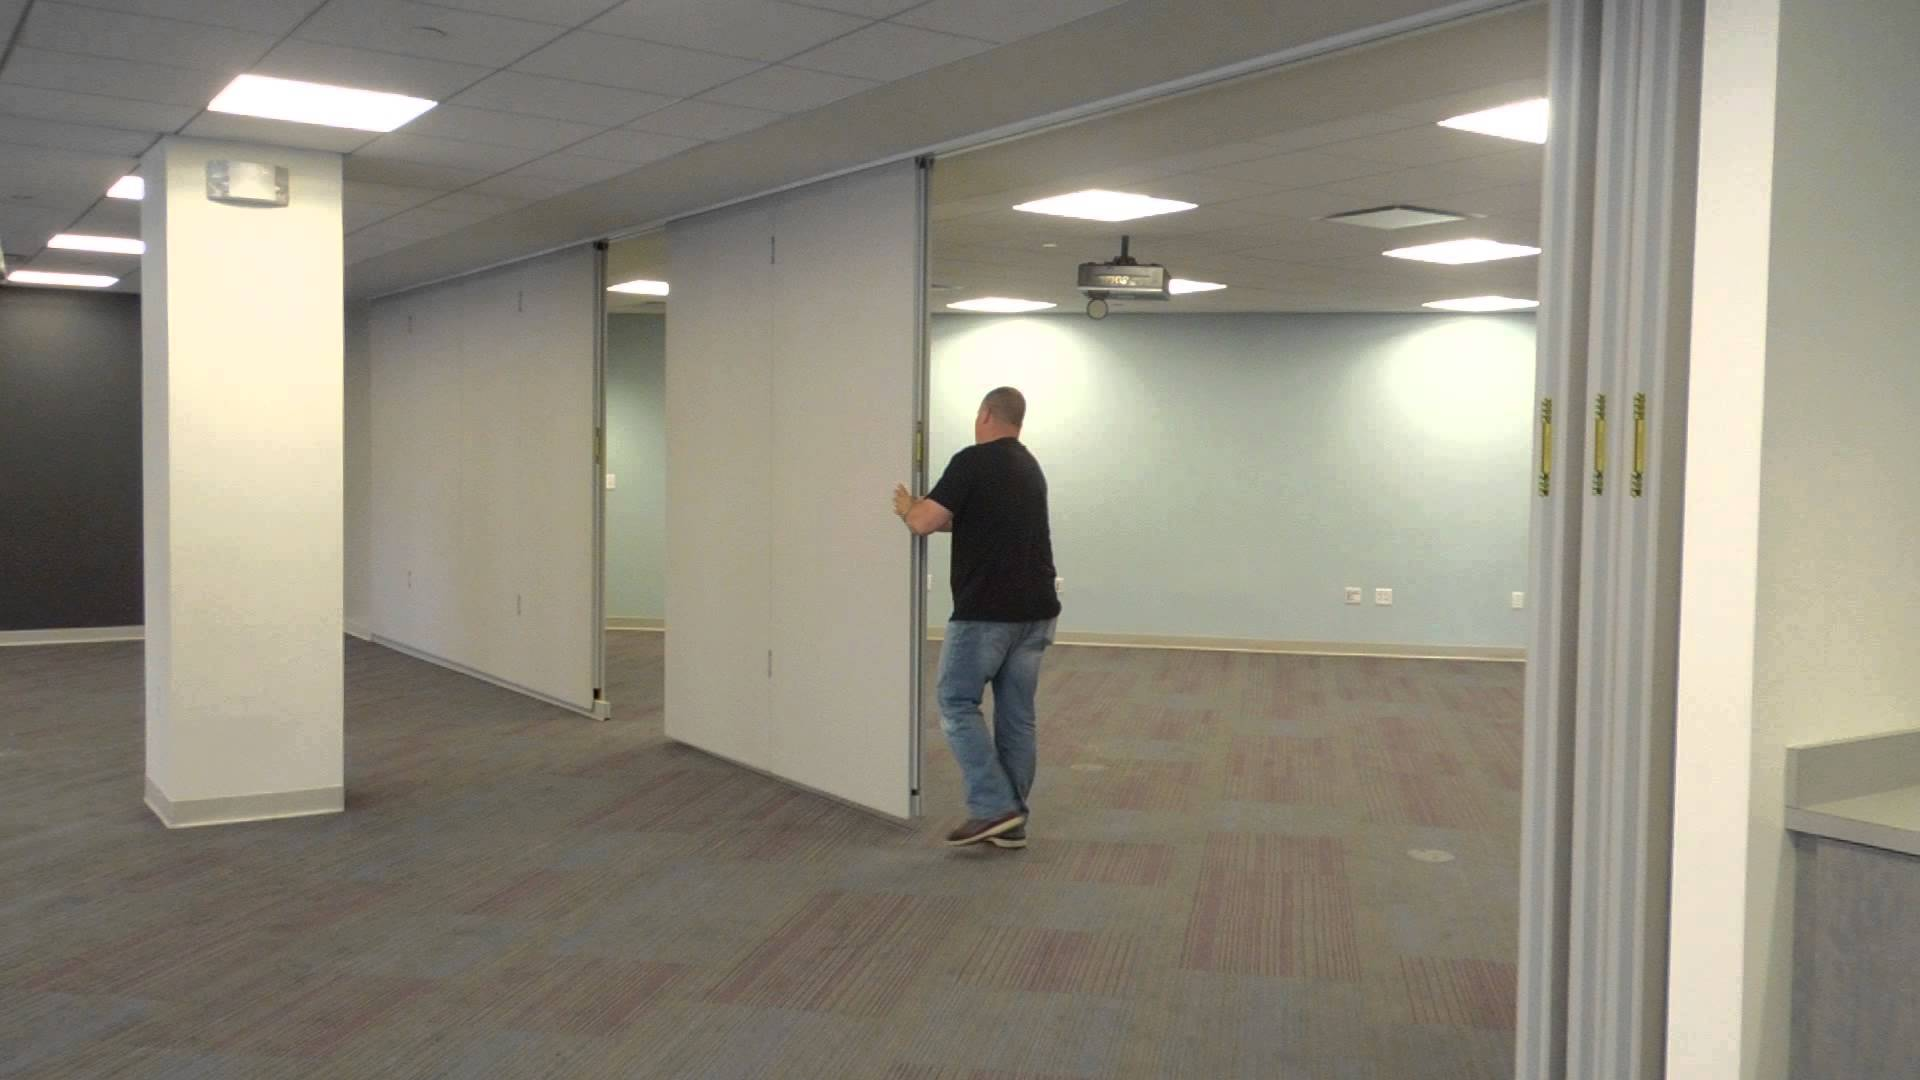 Operable Partitions San Antonio Austin Movable Walls Airwall Repair Maintenance